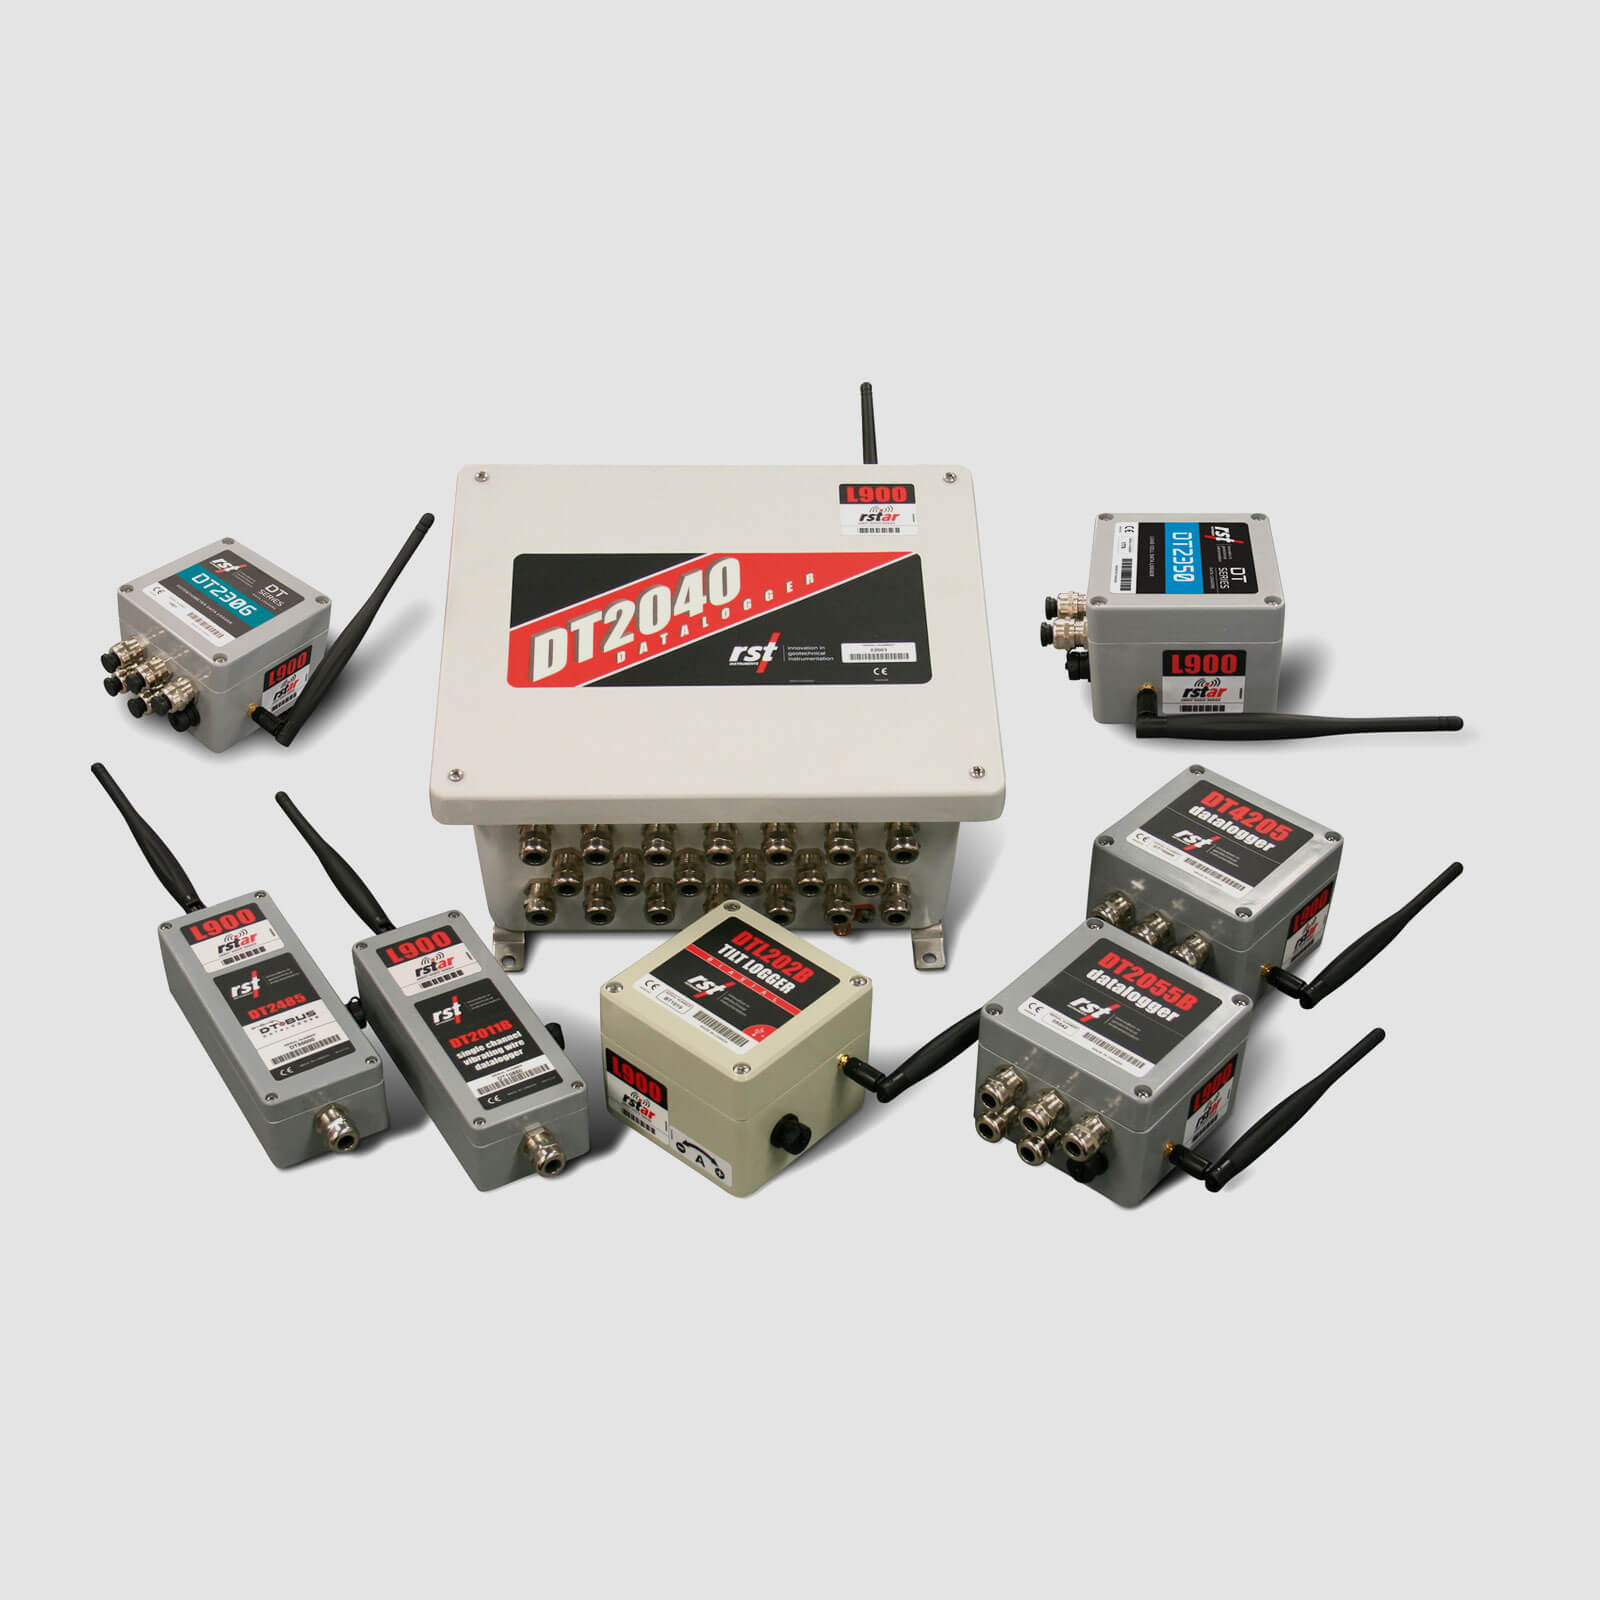 Wireless Data Acquisition Devices